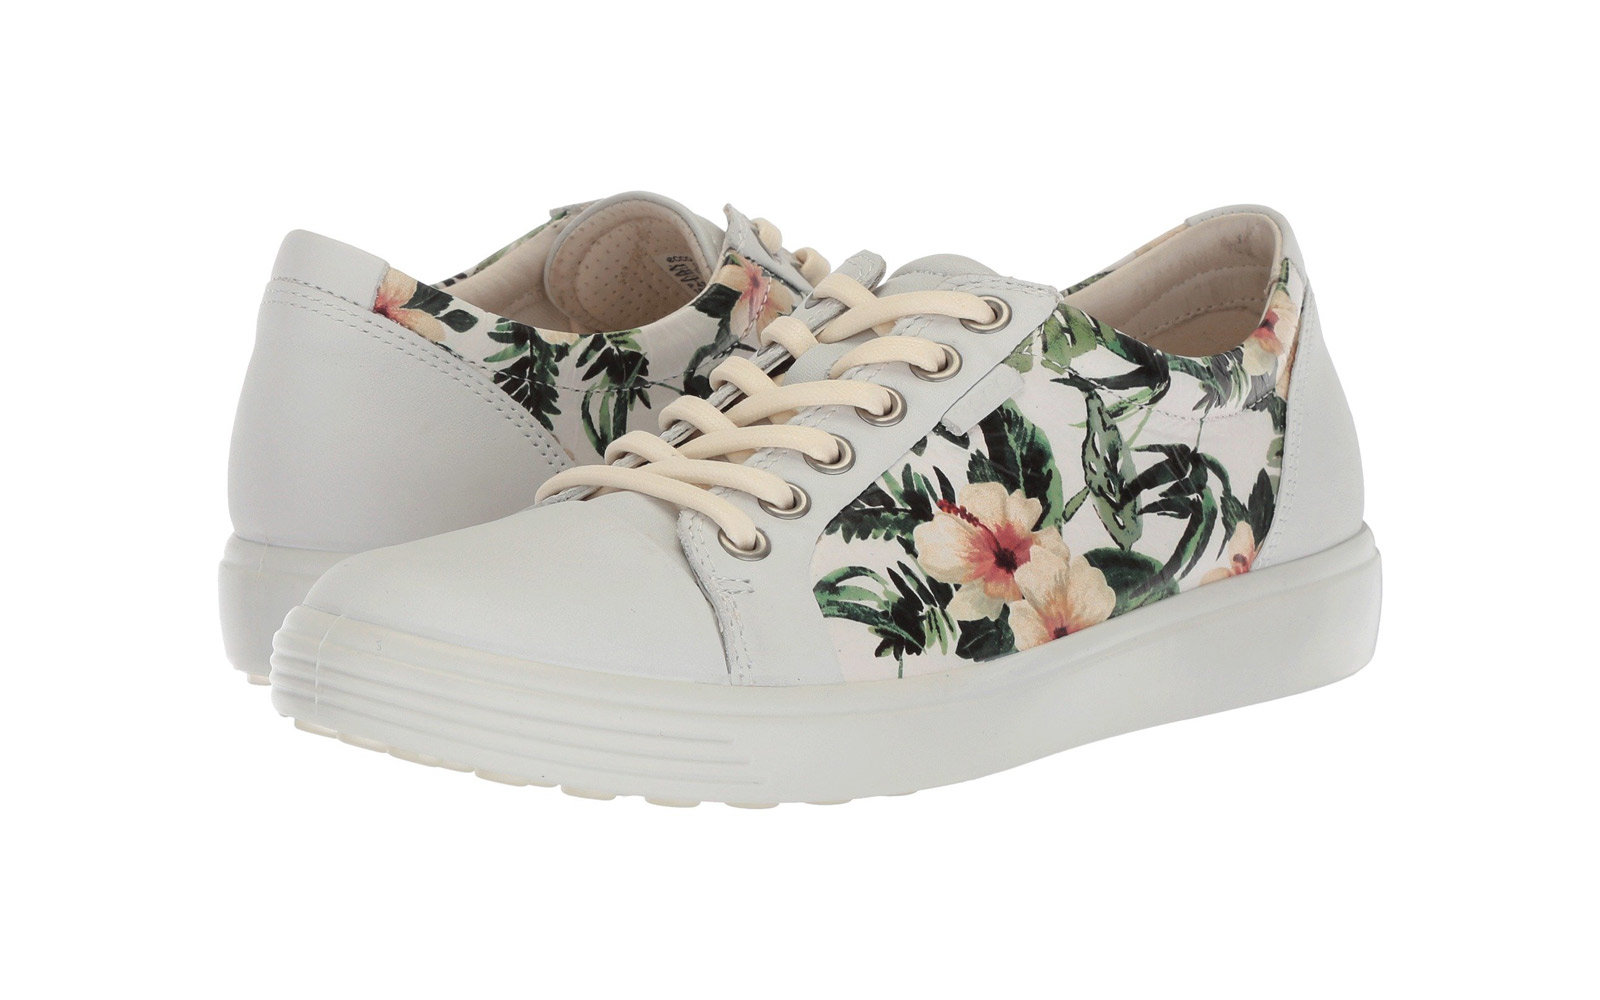 36aeecabb76fef Ecco Soft 7 Women's Sneaker in White/Flower Print. ecco leather soft 7  comfortable sneakers